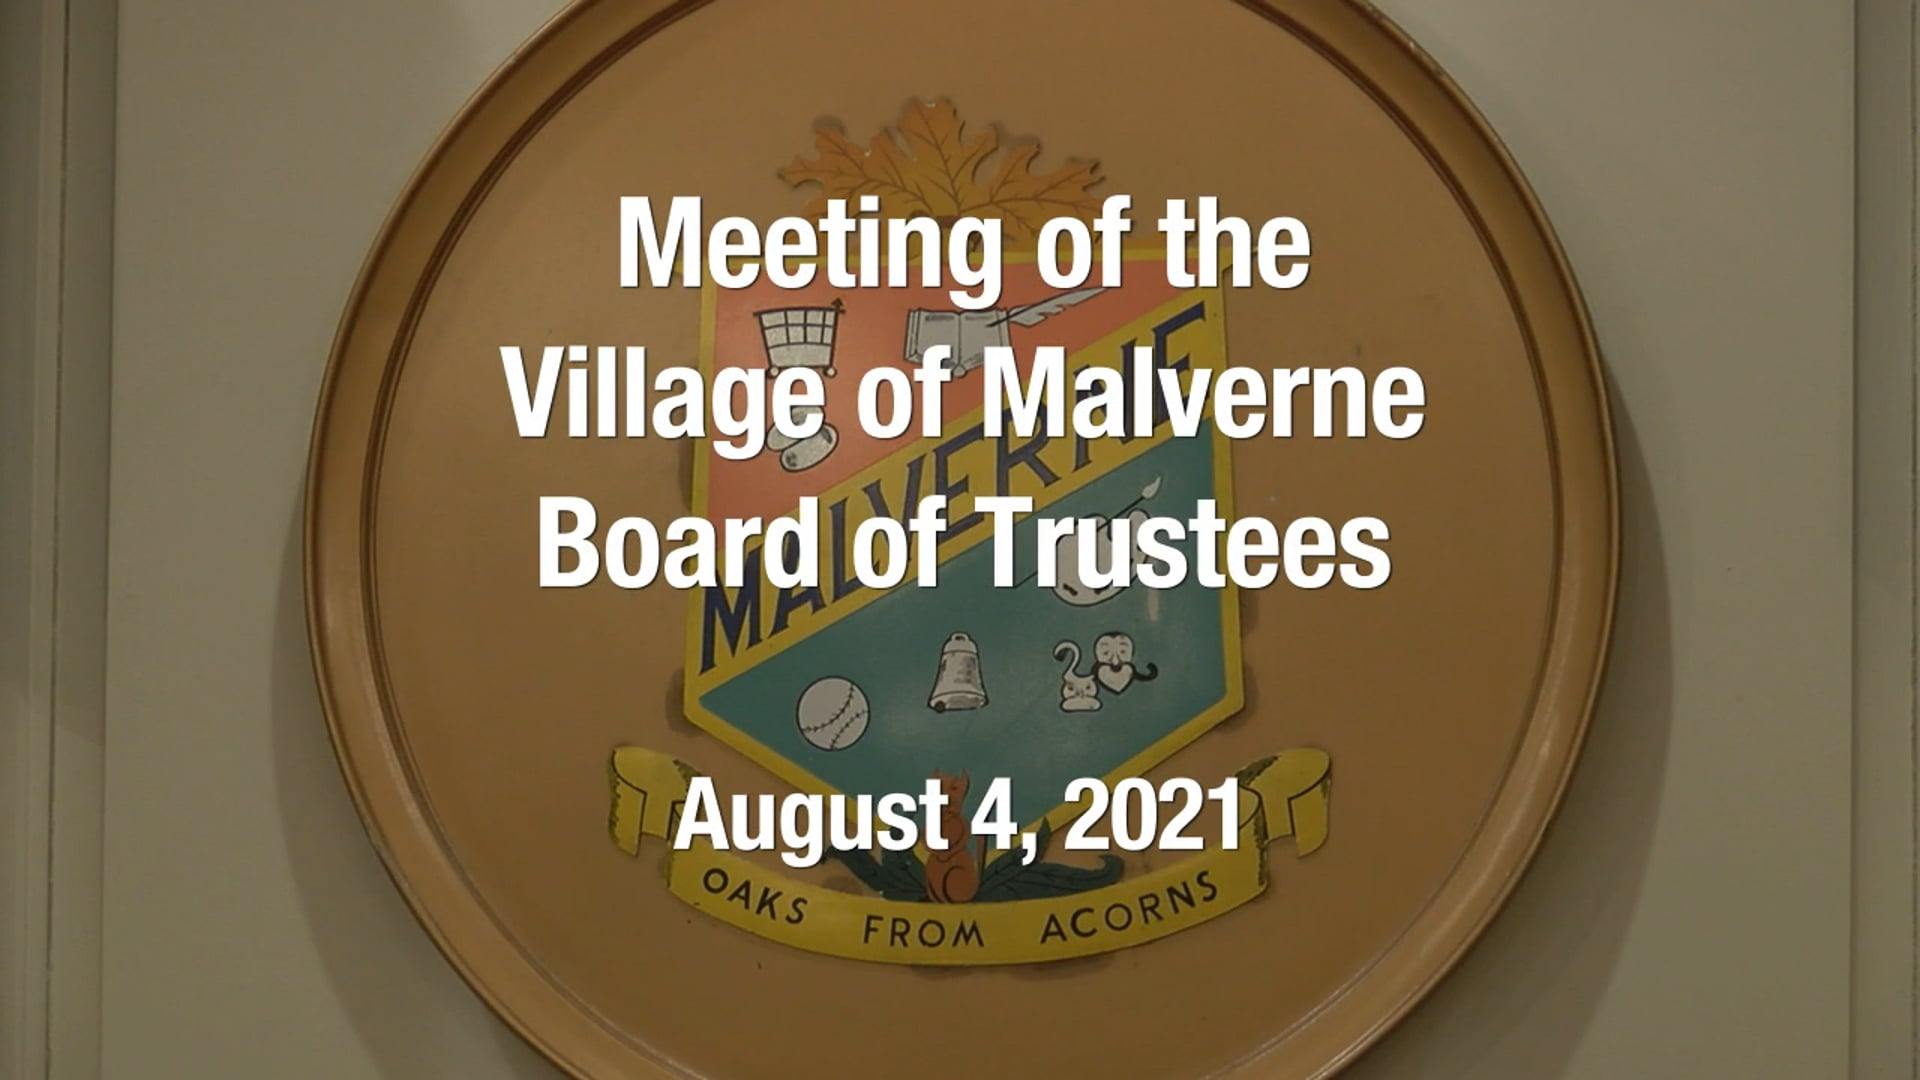 Village of Malverne - Meeting of the Board of Trustees -  August 4, 2021